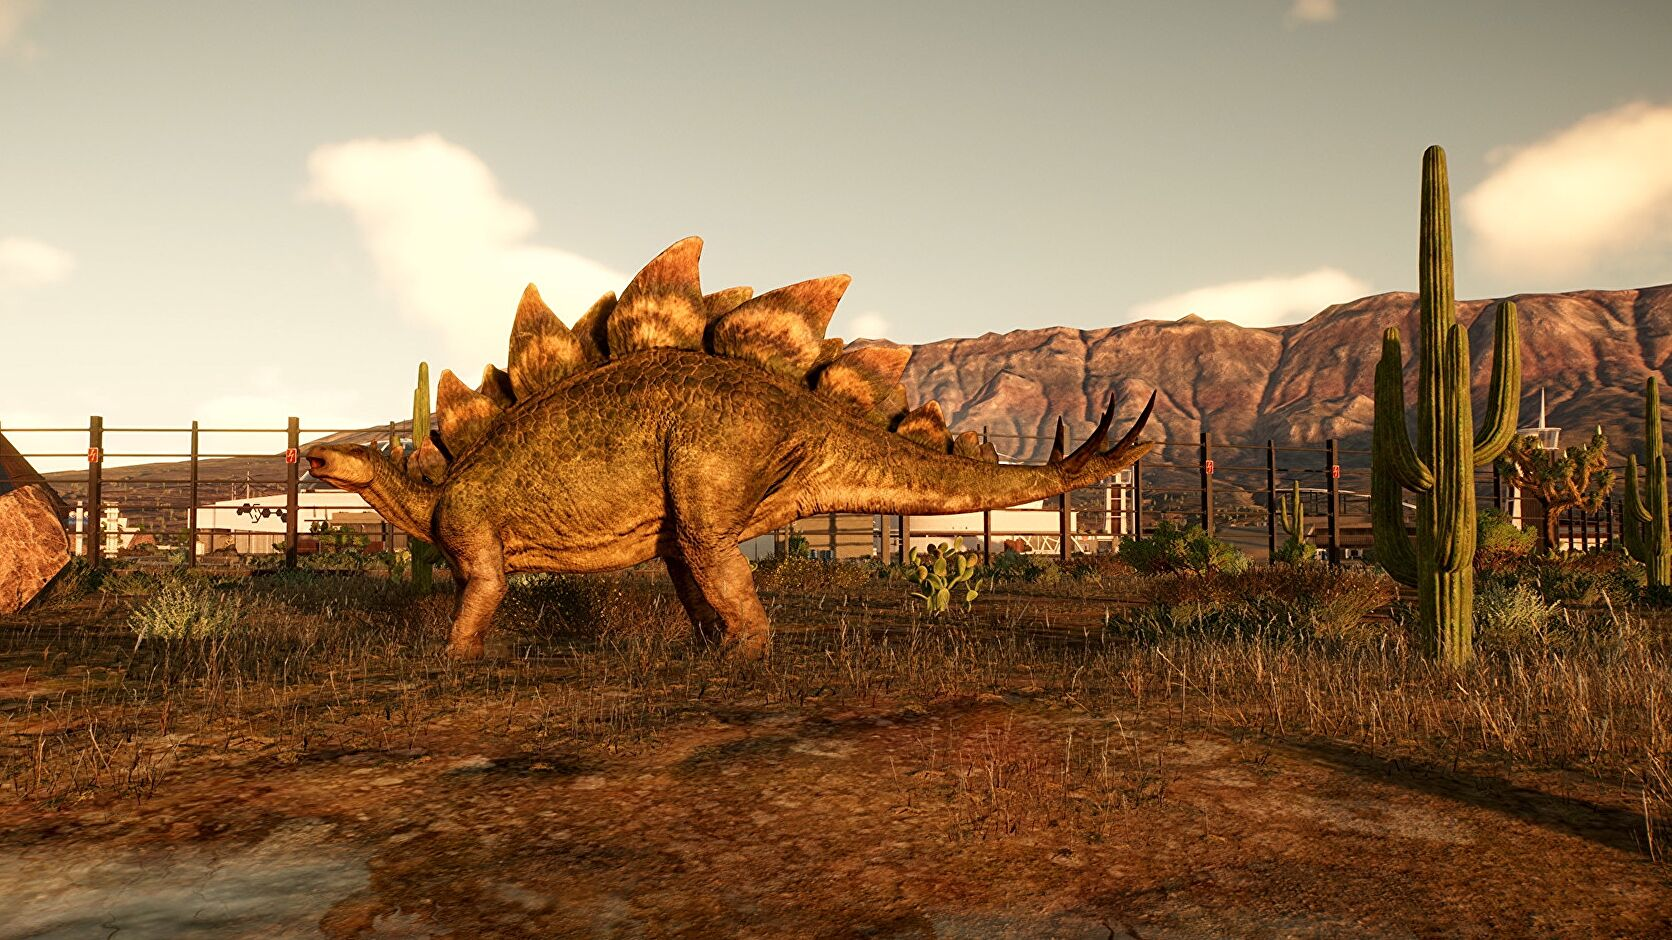 I hope Jurassic World Evolution 2 will just let me build a nice, peaceful dino park